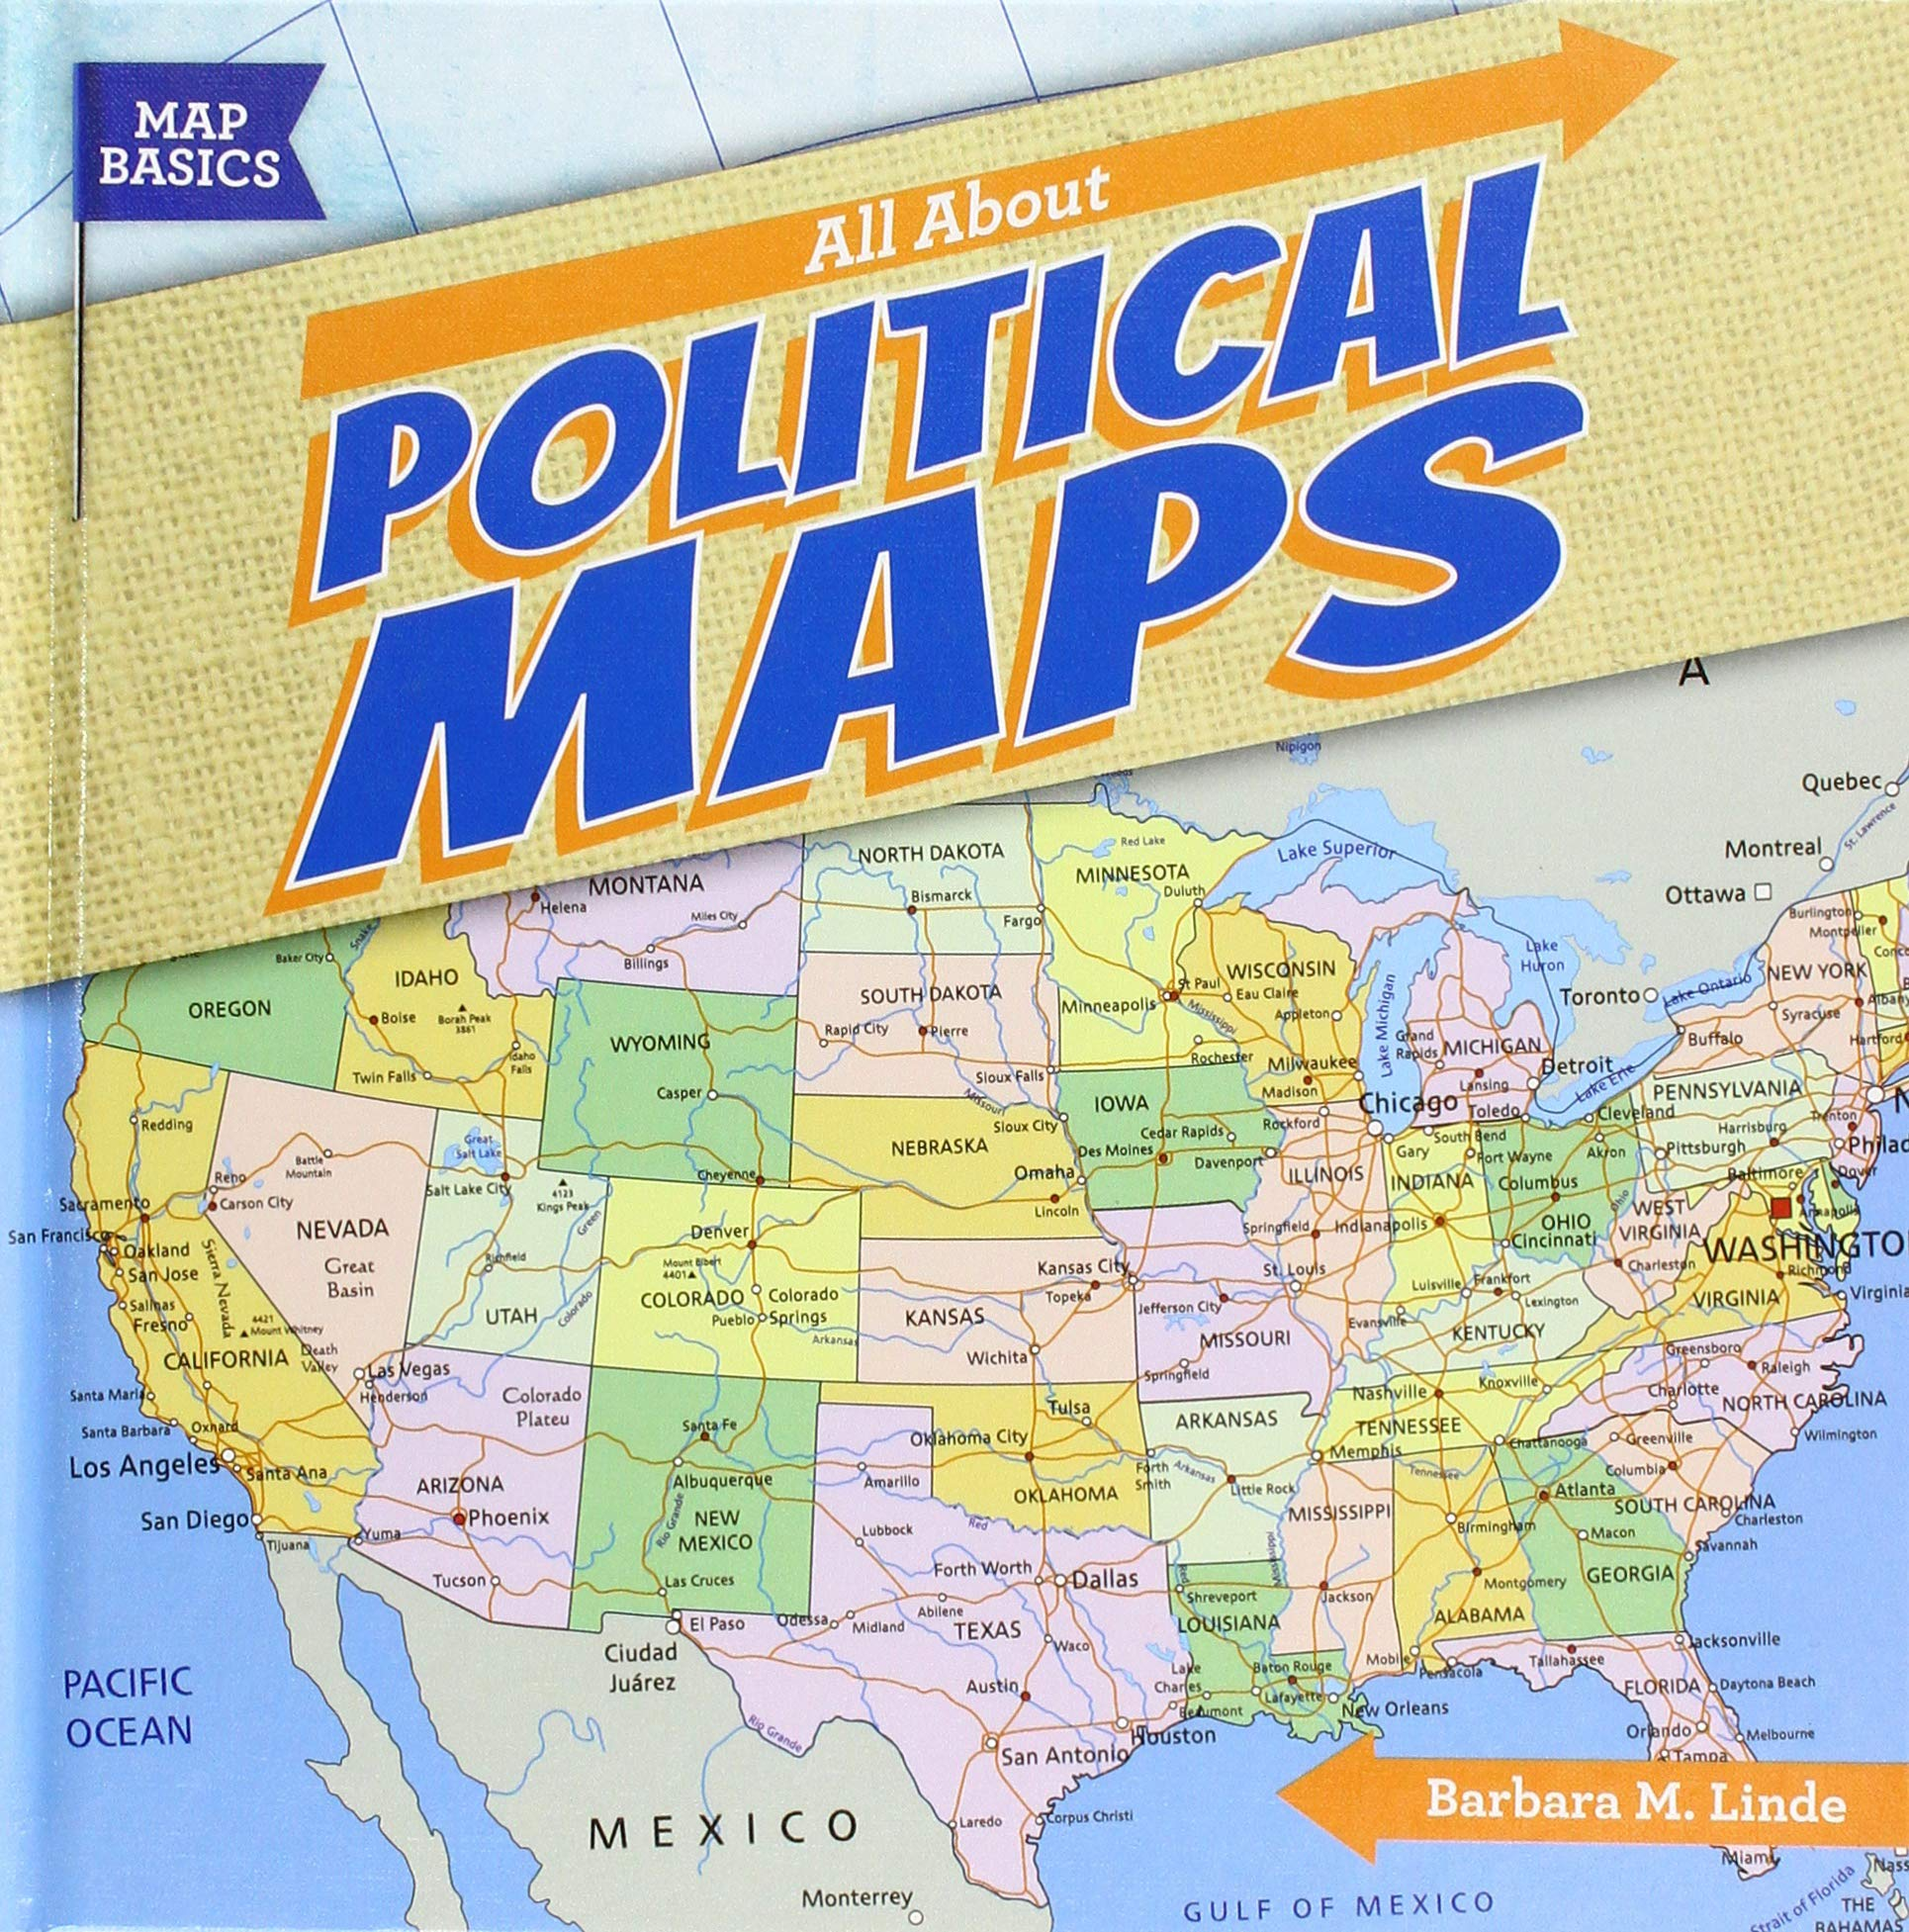 All About Political Maps Map Basics Barbara M Linde